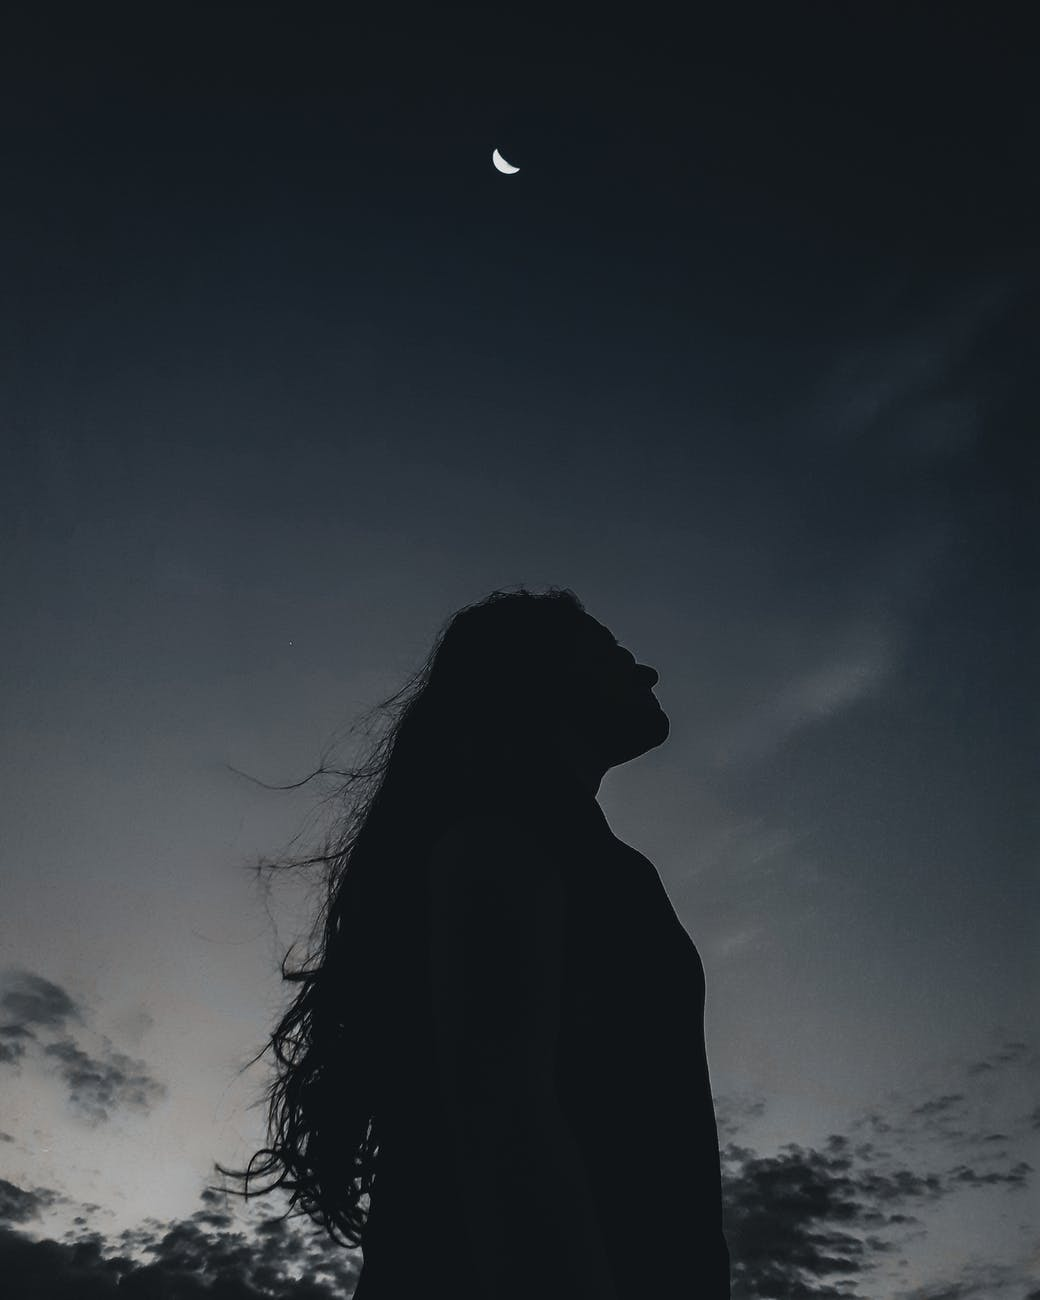 woman under the moonlit sky at twilight